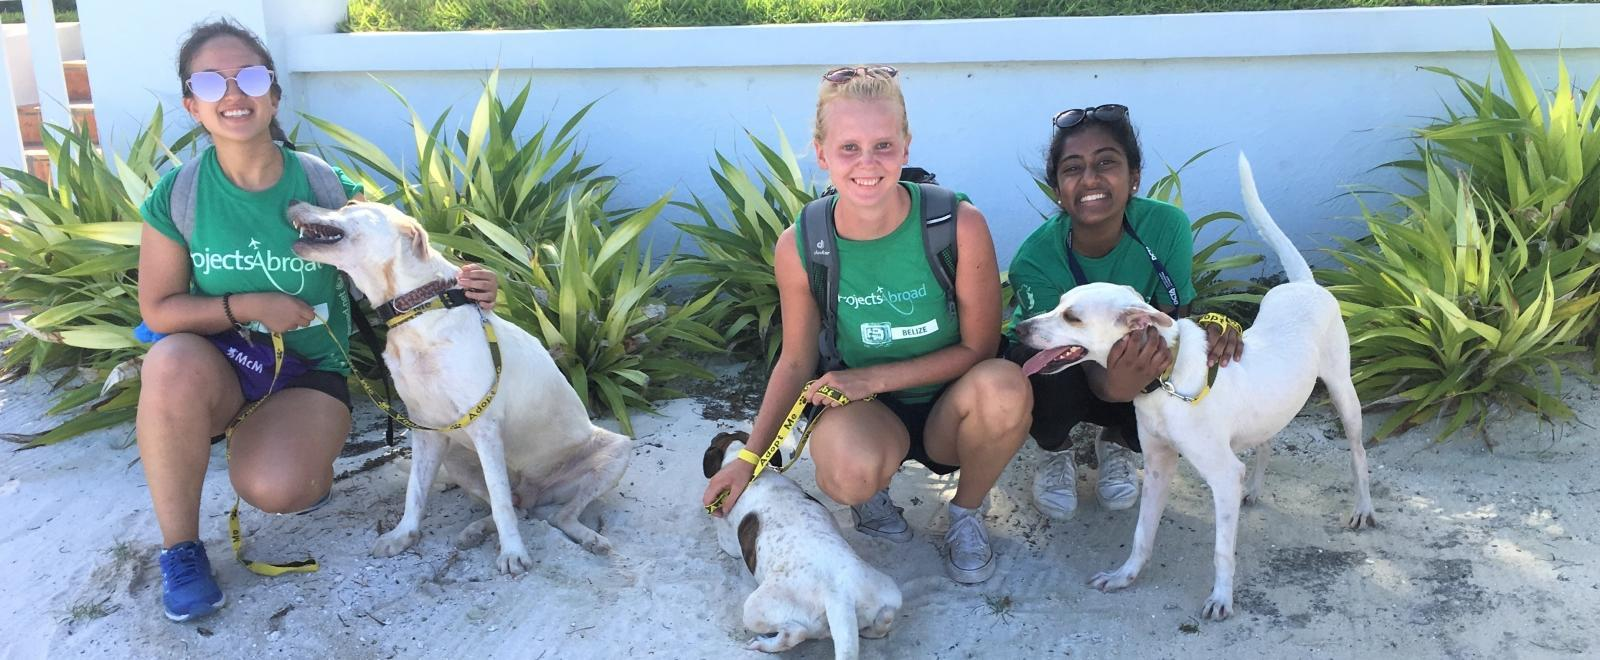 Volunteers hold the dogs from their placement as they work with animals in Belize